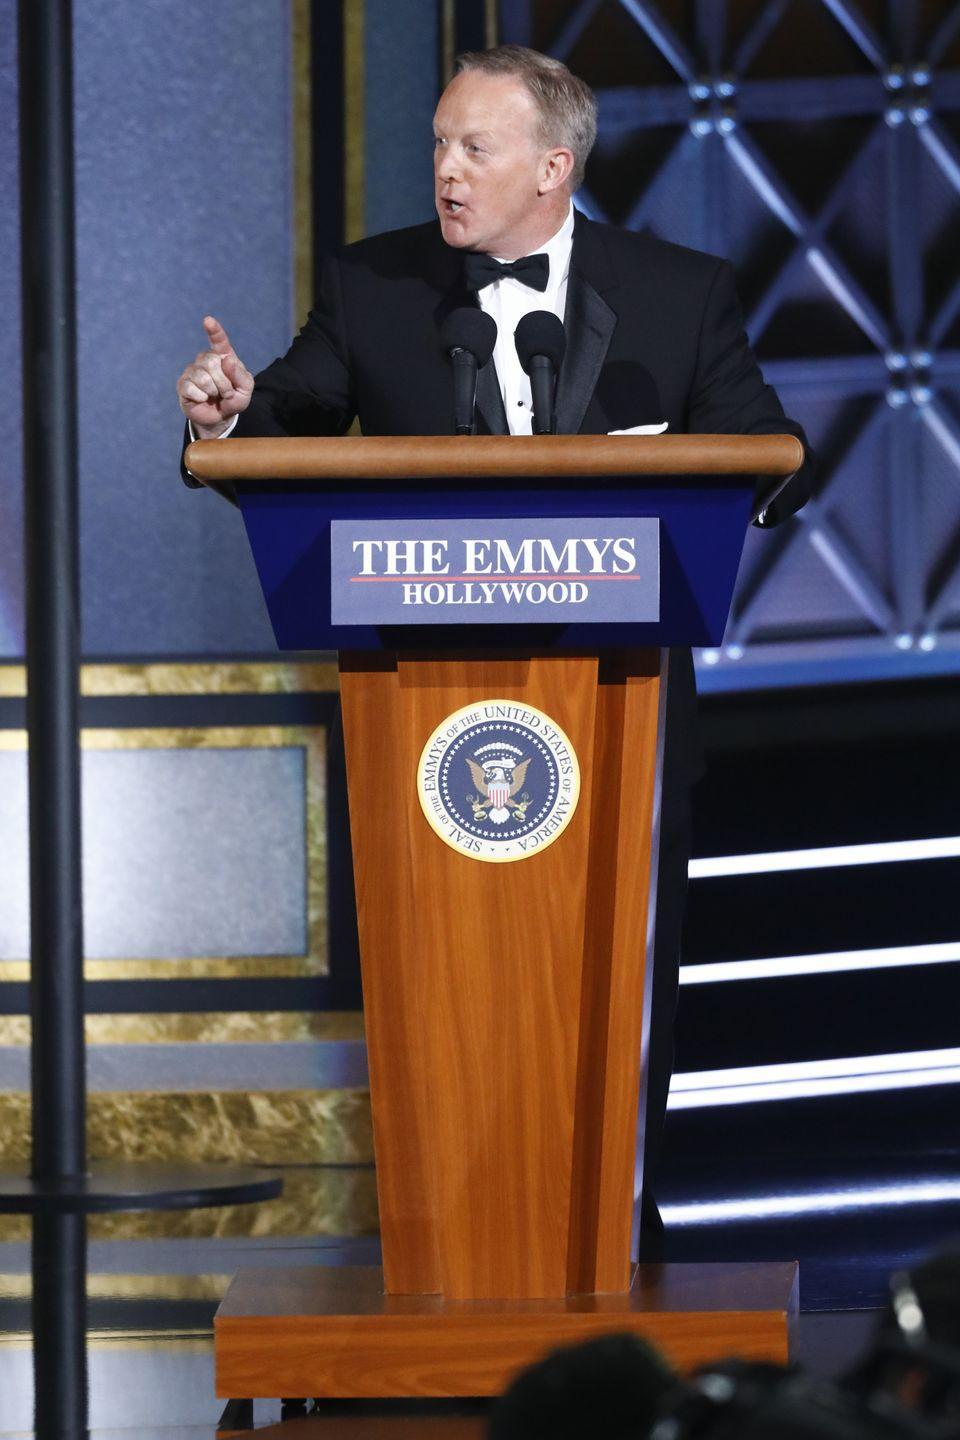 <p>It was an odd choice of a bit for the Emmys to have Sean Spicer appear on stage, and it was one that left everyone feeling uncomfortable. Spicer basically made a joke out of the job he had working for President Donald Trump, making up facts about the ceremony and saying it was the largest audience in history. </p>